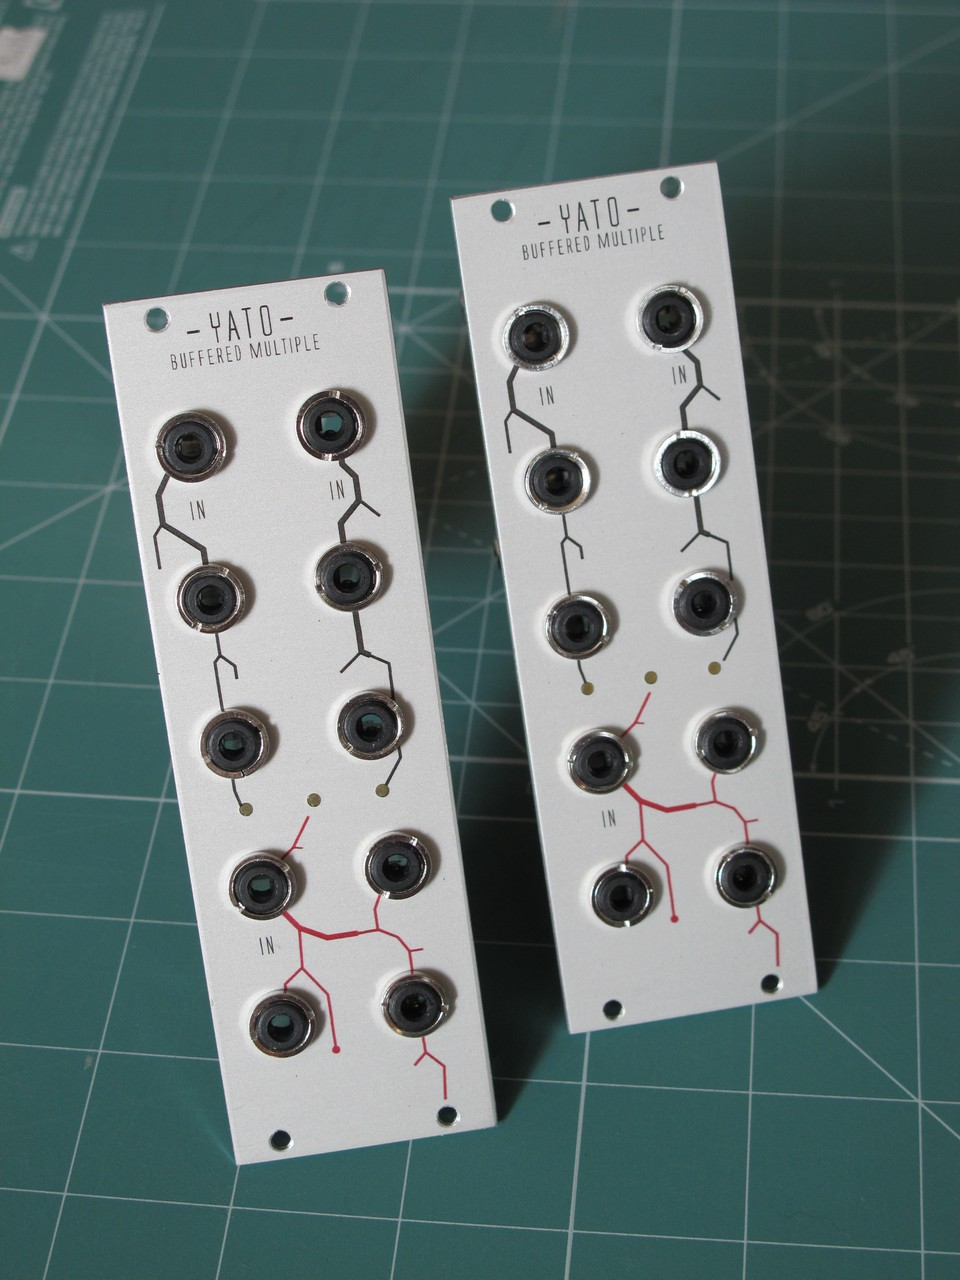 Front shot of the two eurorack multiple modules